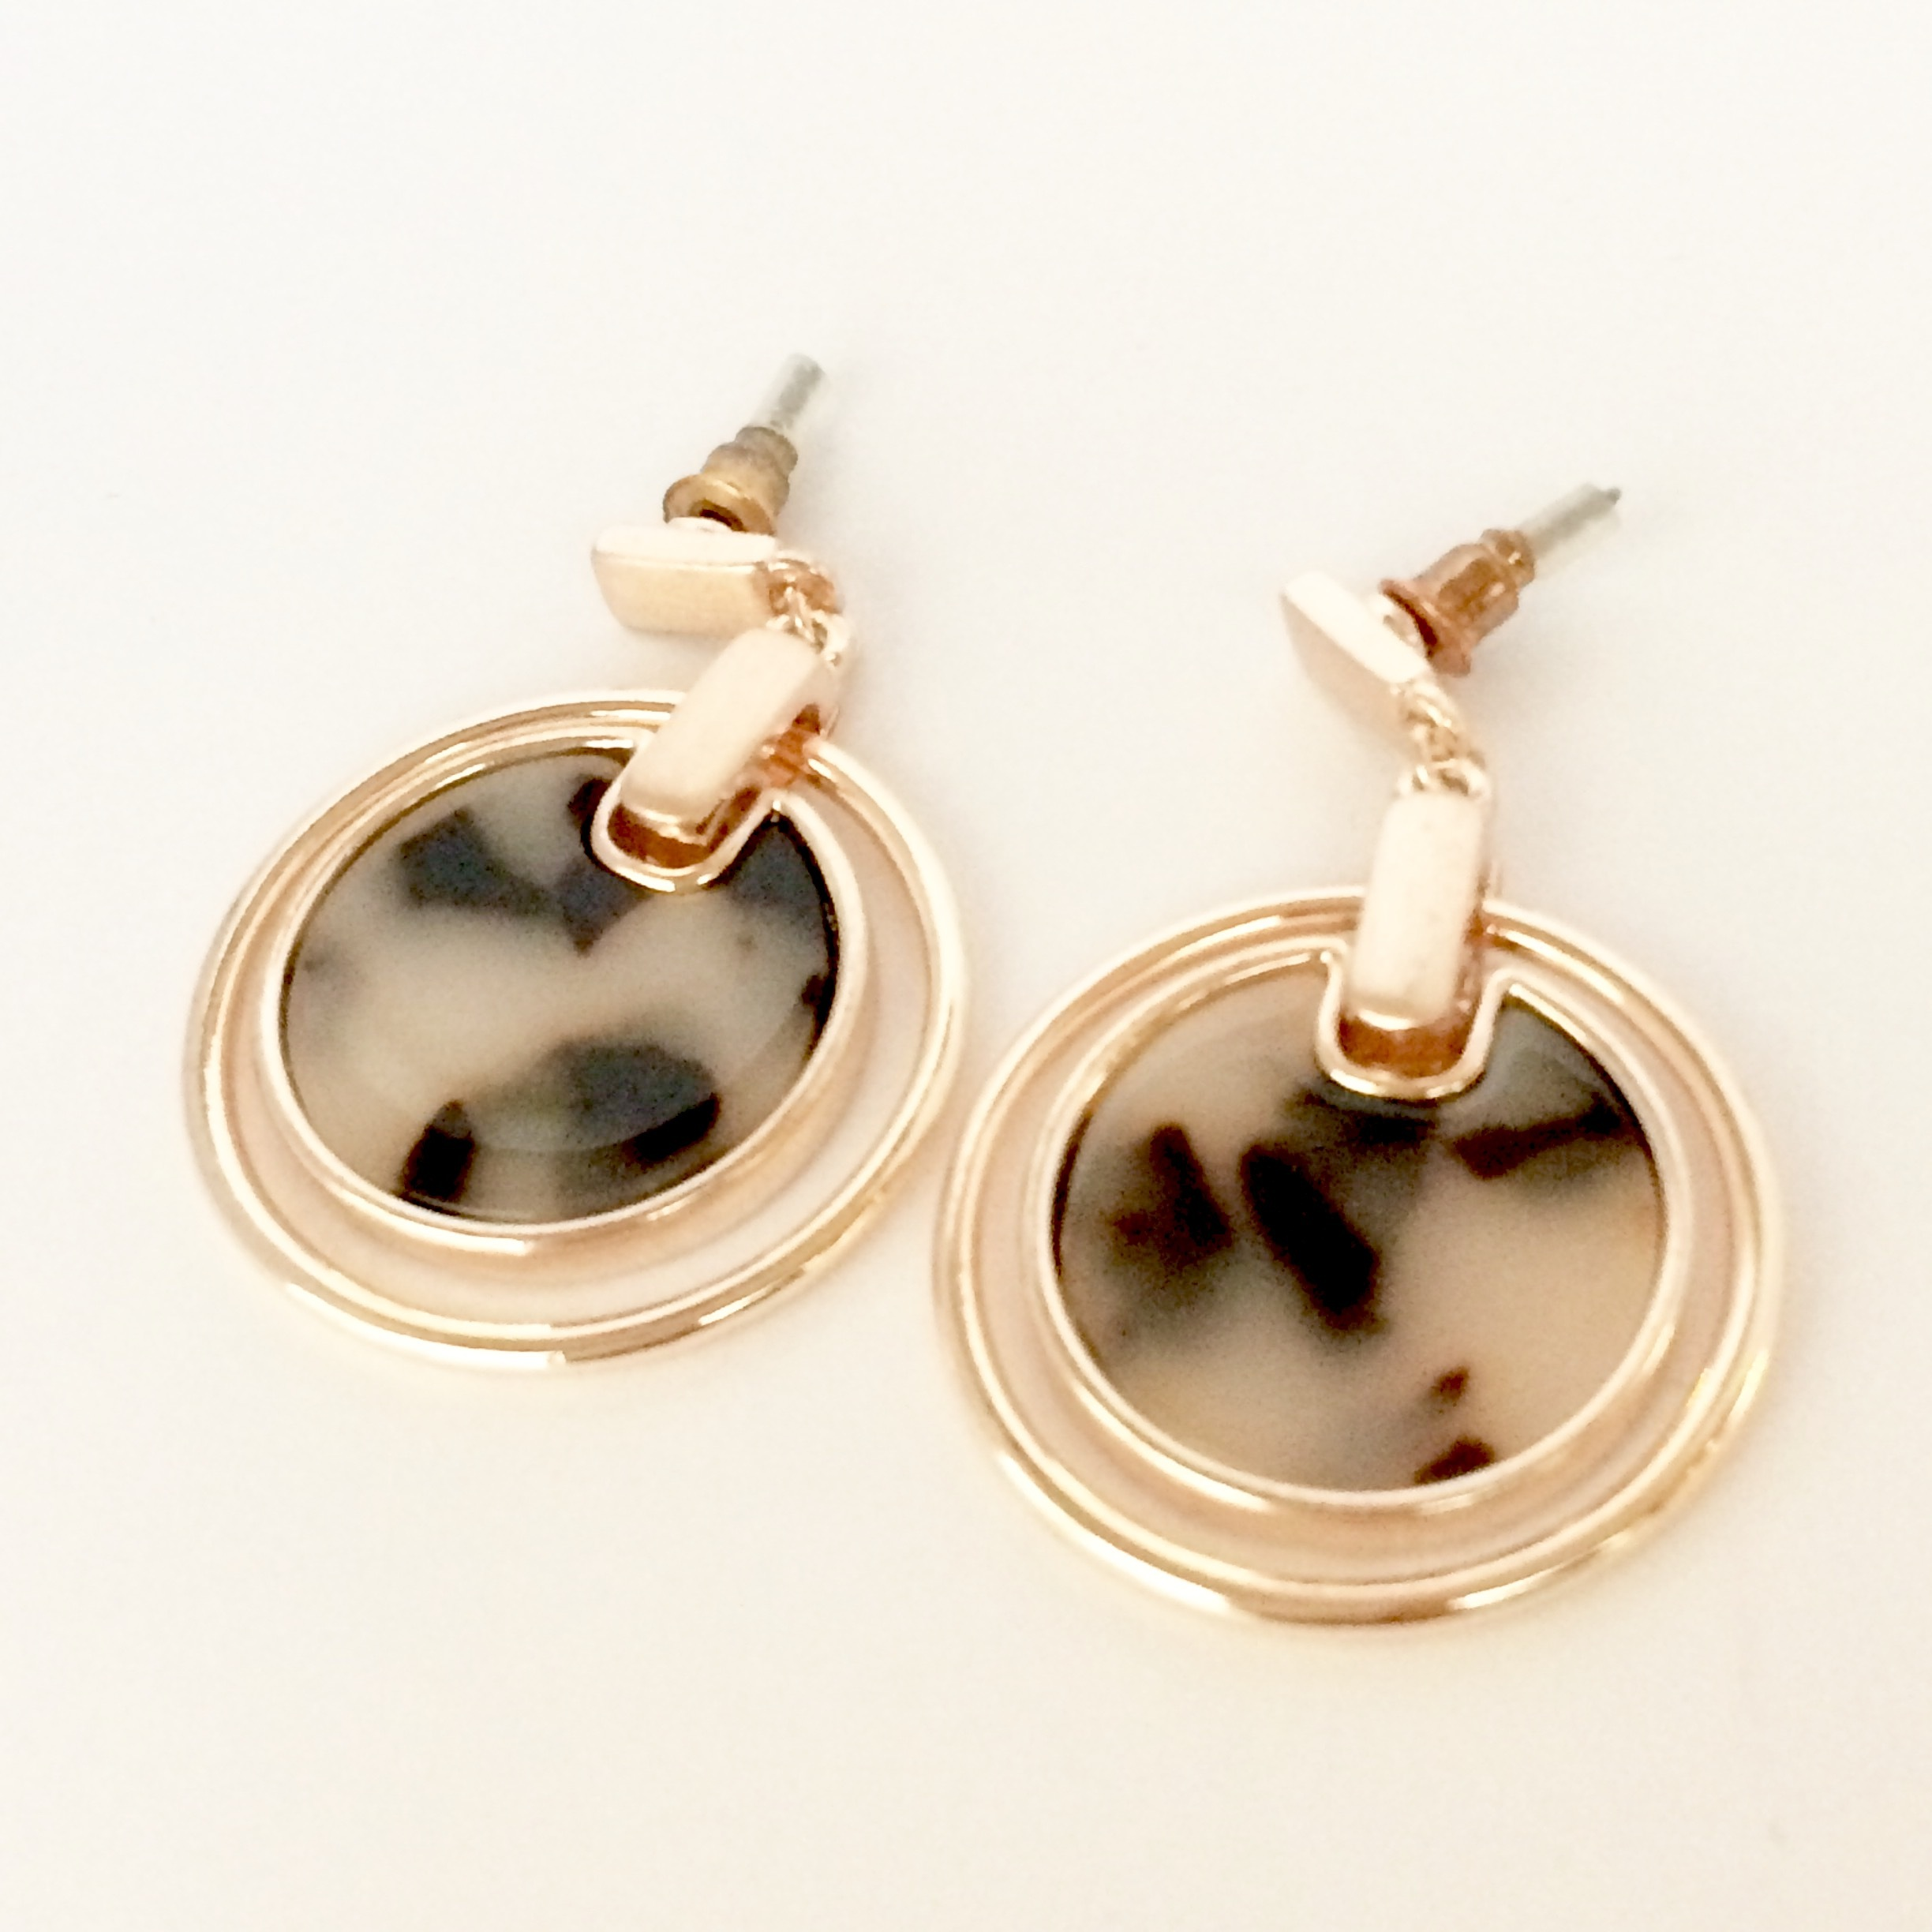 【 UNSEABLE 】Minimal Edge Earrings